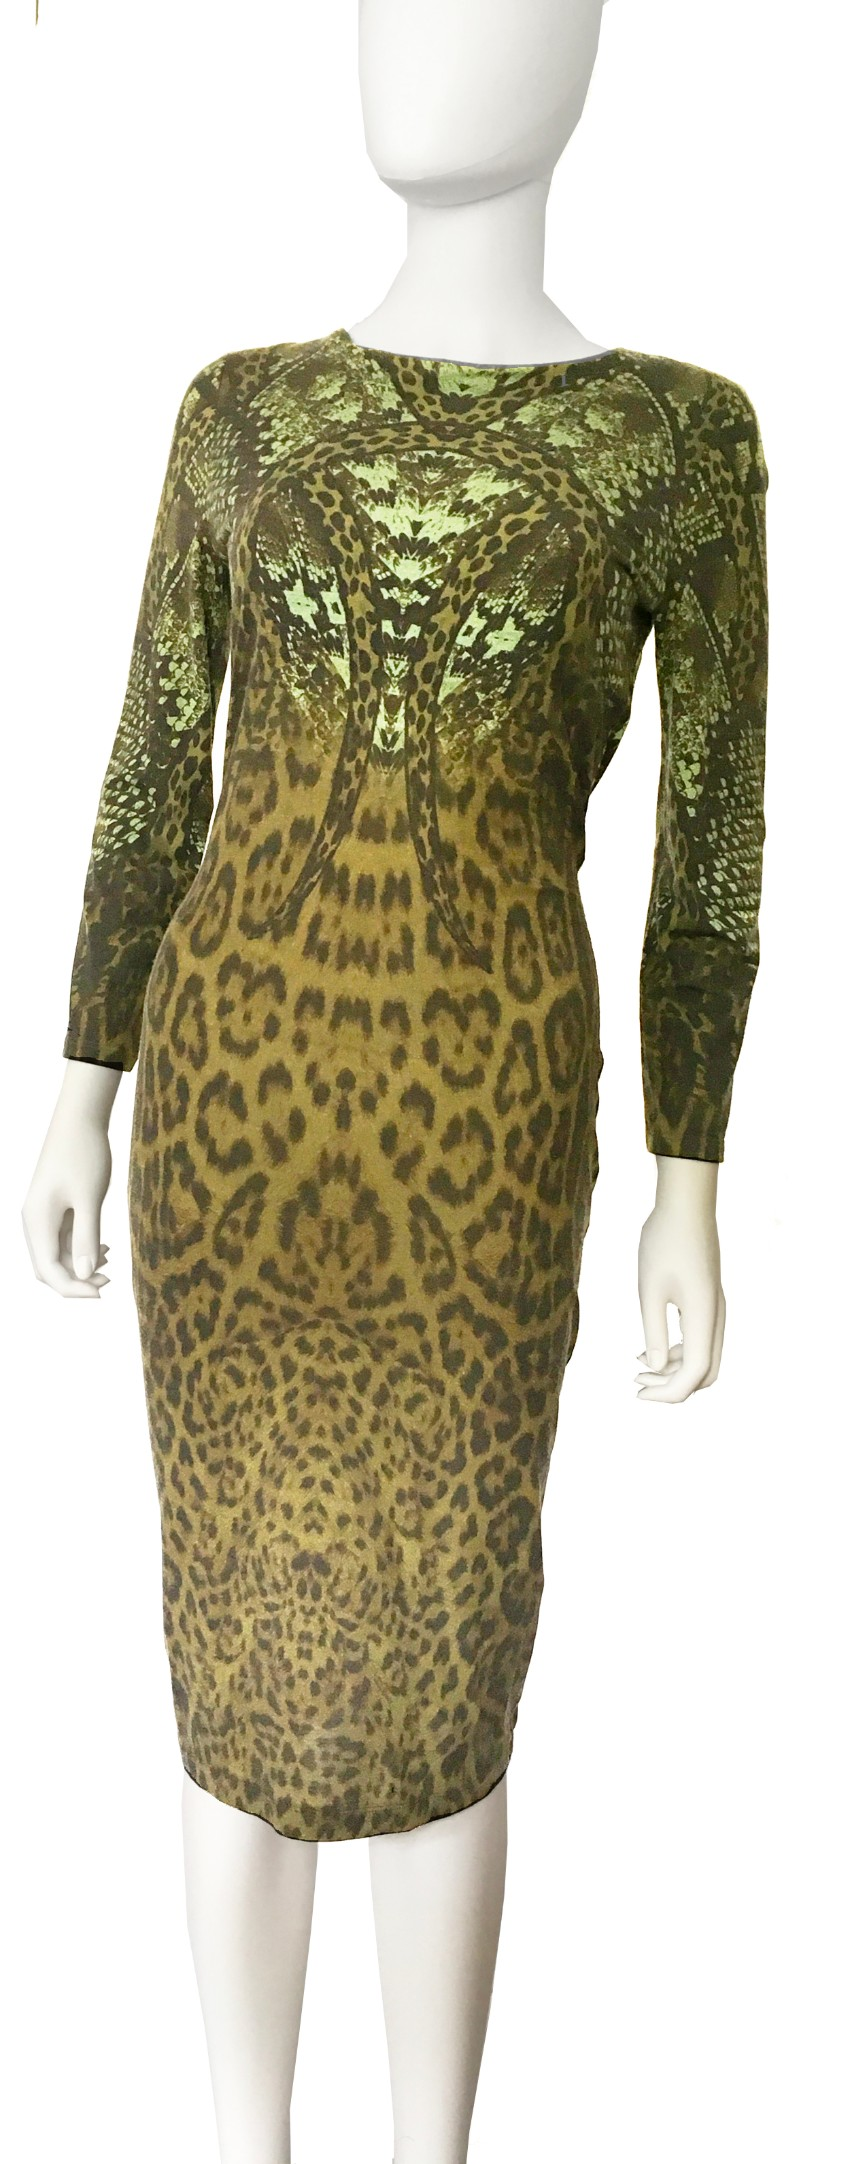 Roberto Cavalli Snake & Leopard Print Stretch Under the Knee Dress